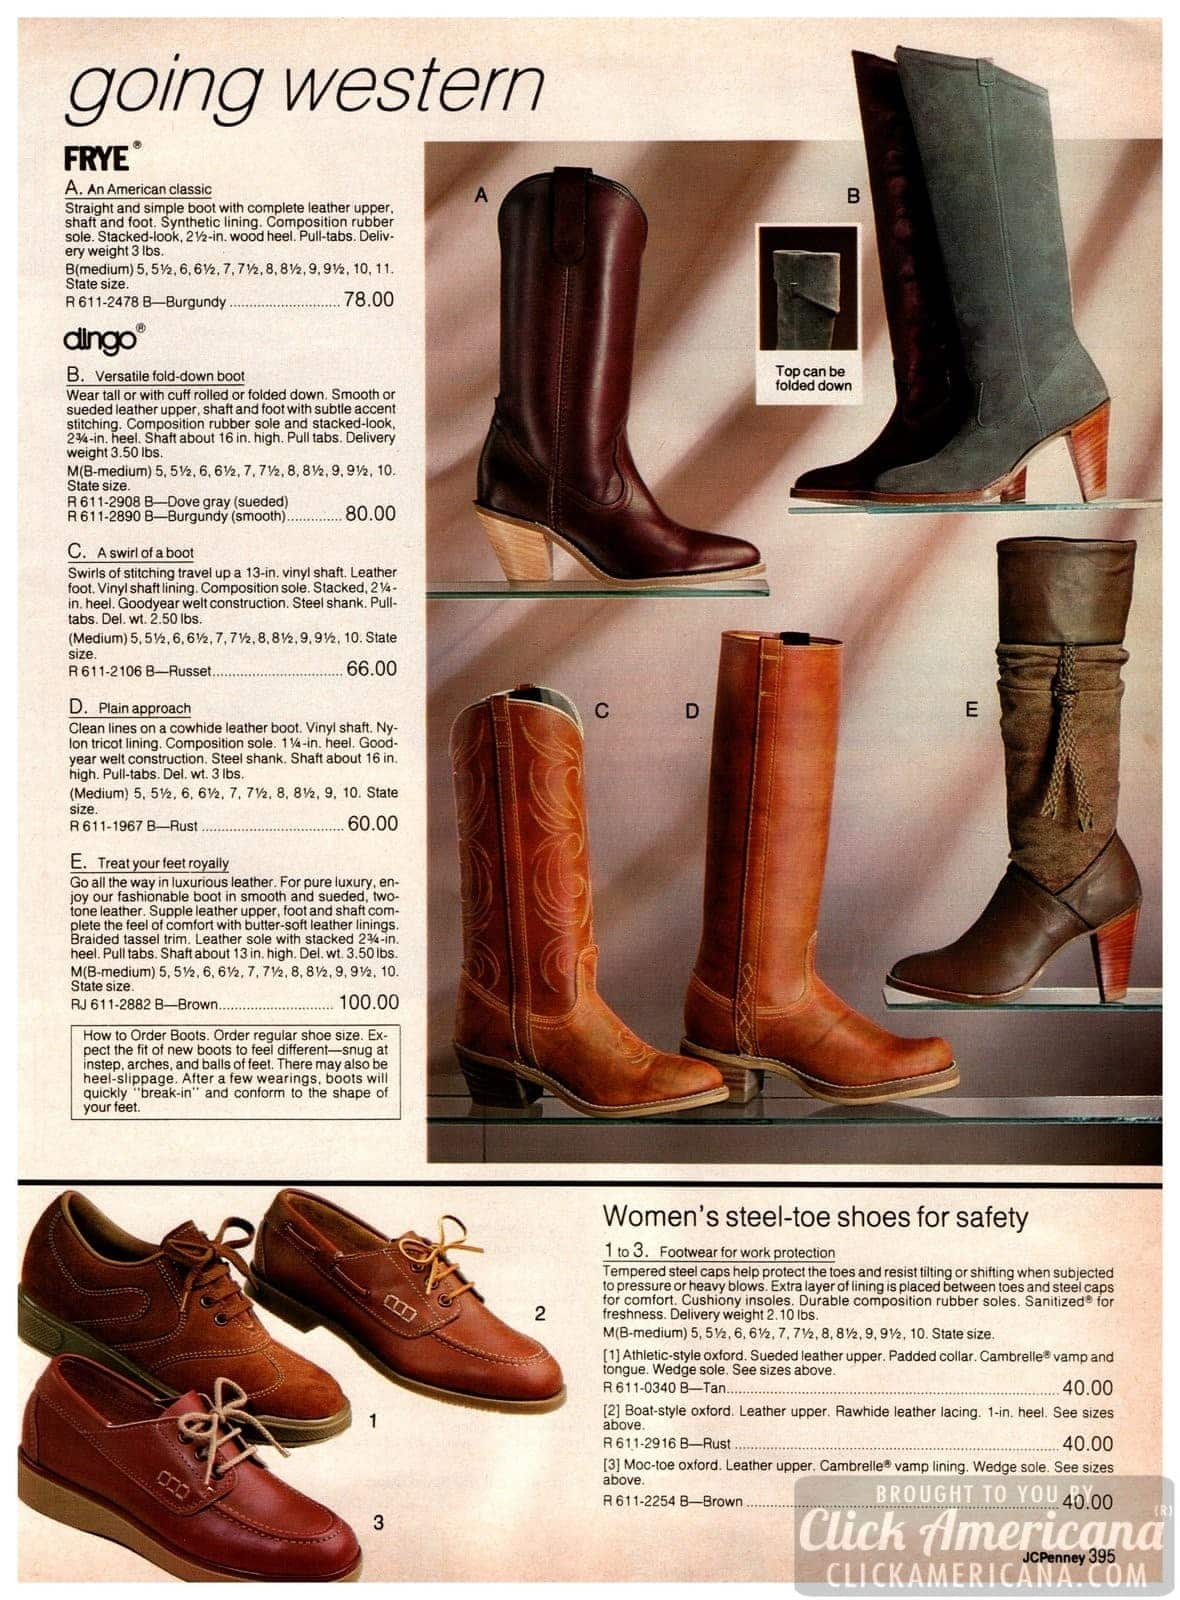 df2b1a4745 Trendy '80s women's shoes from the 1983 JC Penney catalog - Click ...